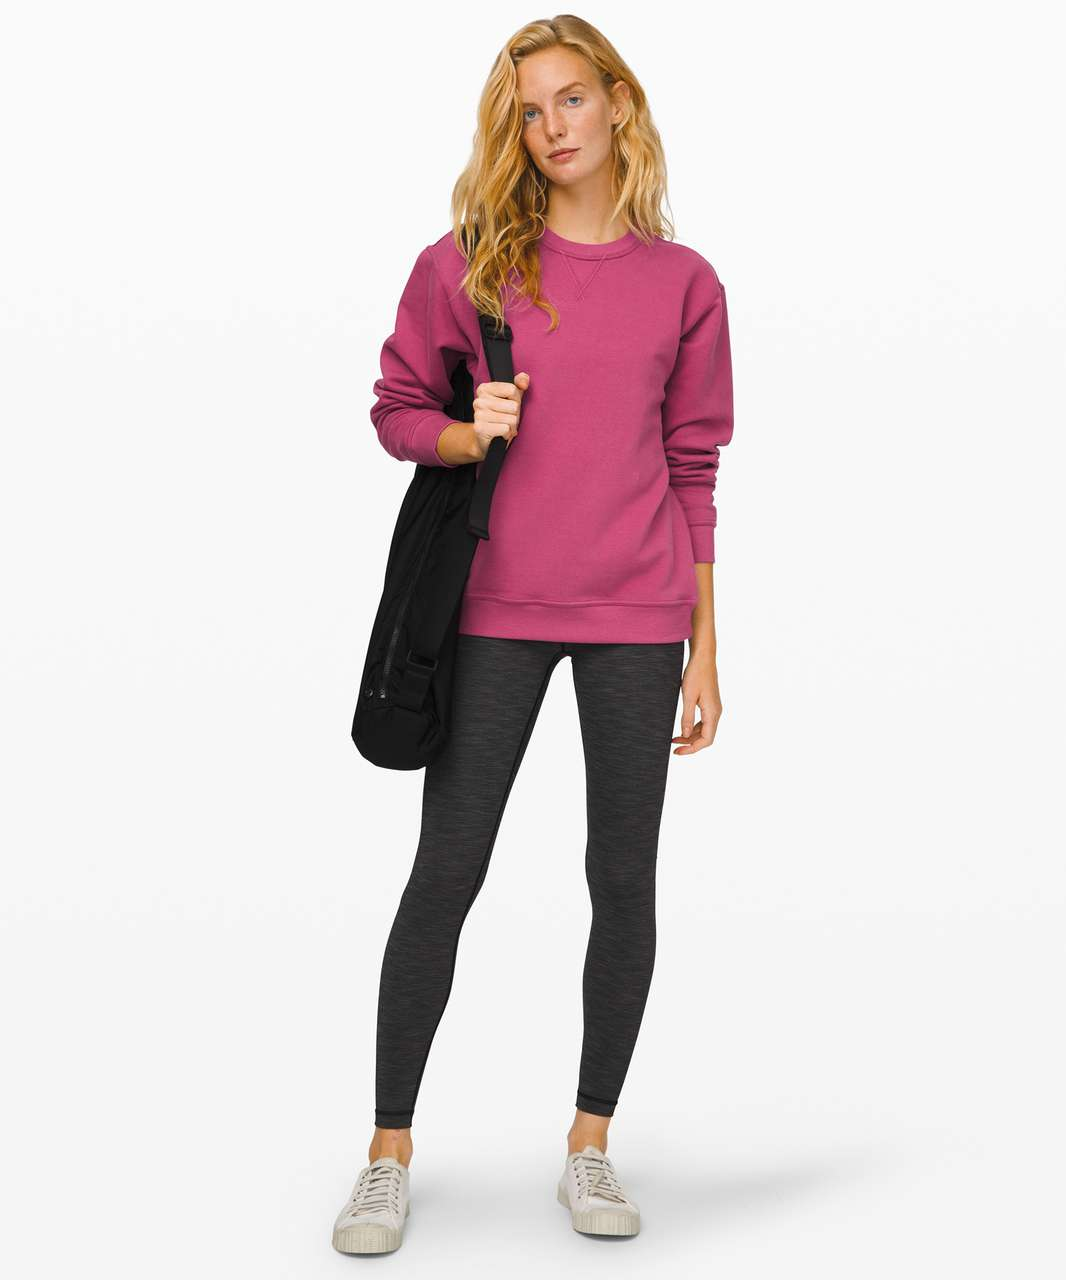 Lululemon All Yours Crew - Moss Rose